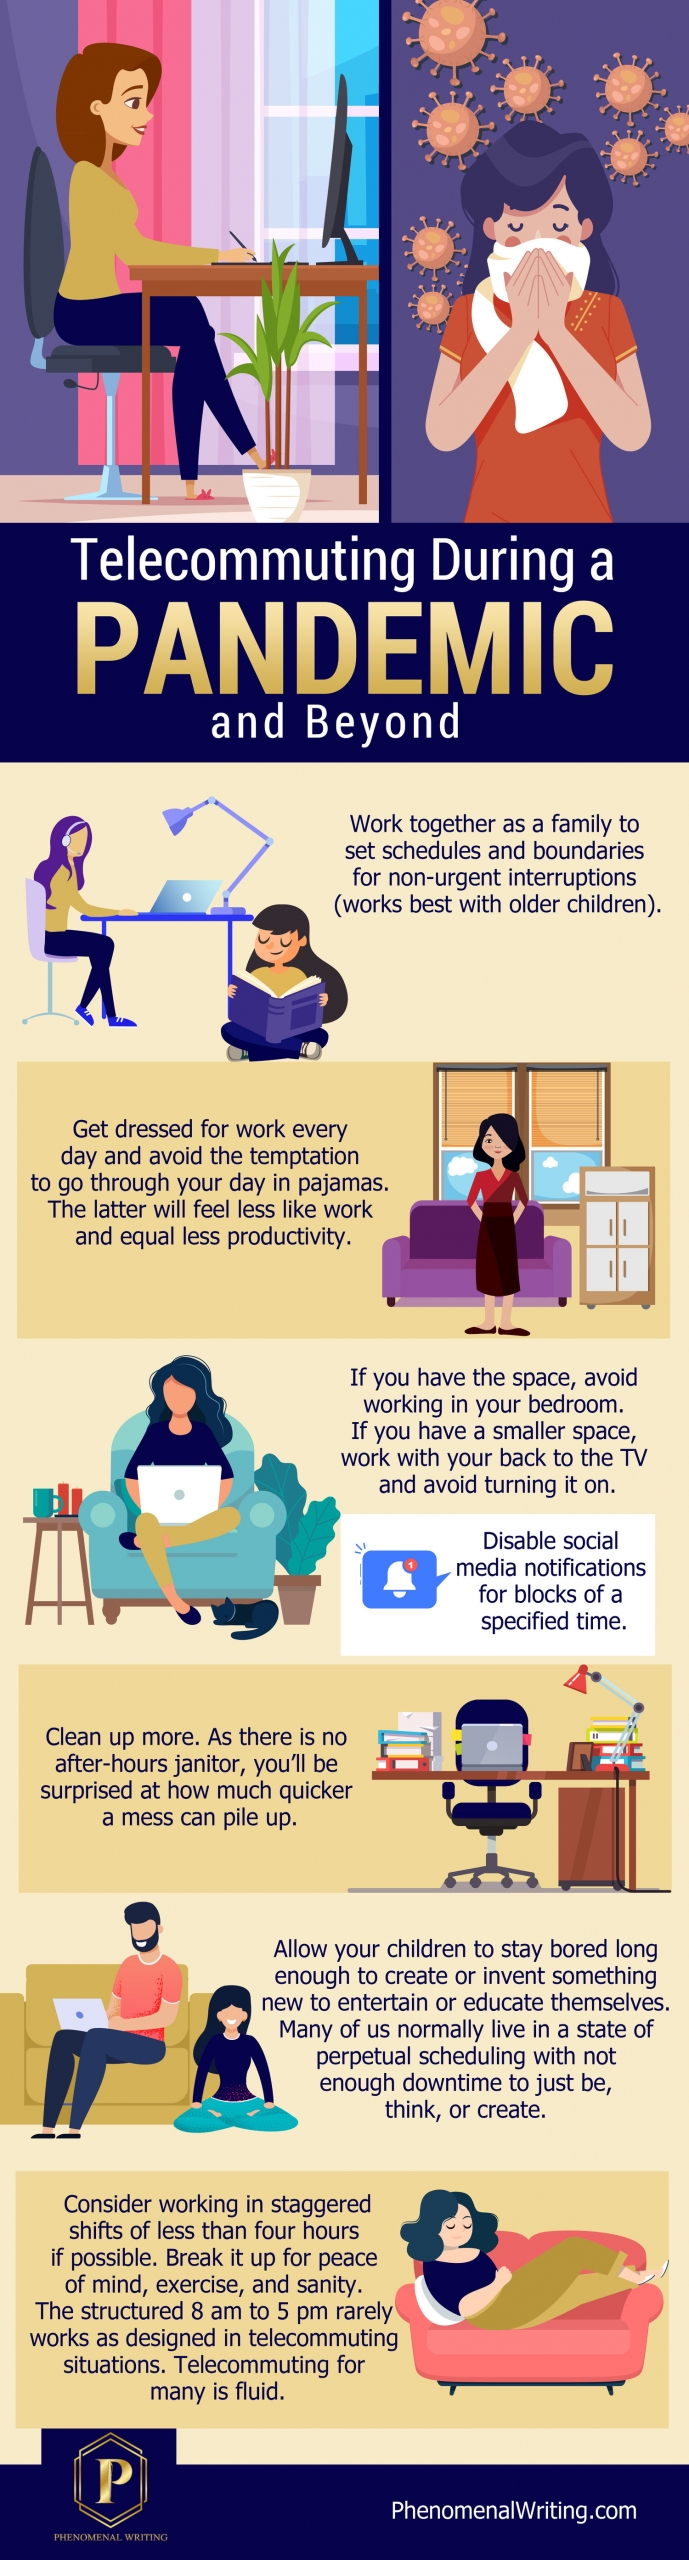 tips for telecommuting during a pandemic and beyond.